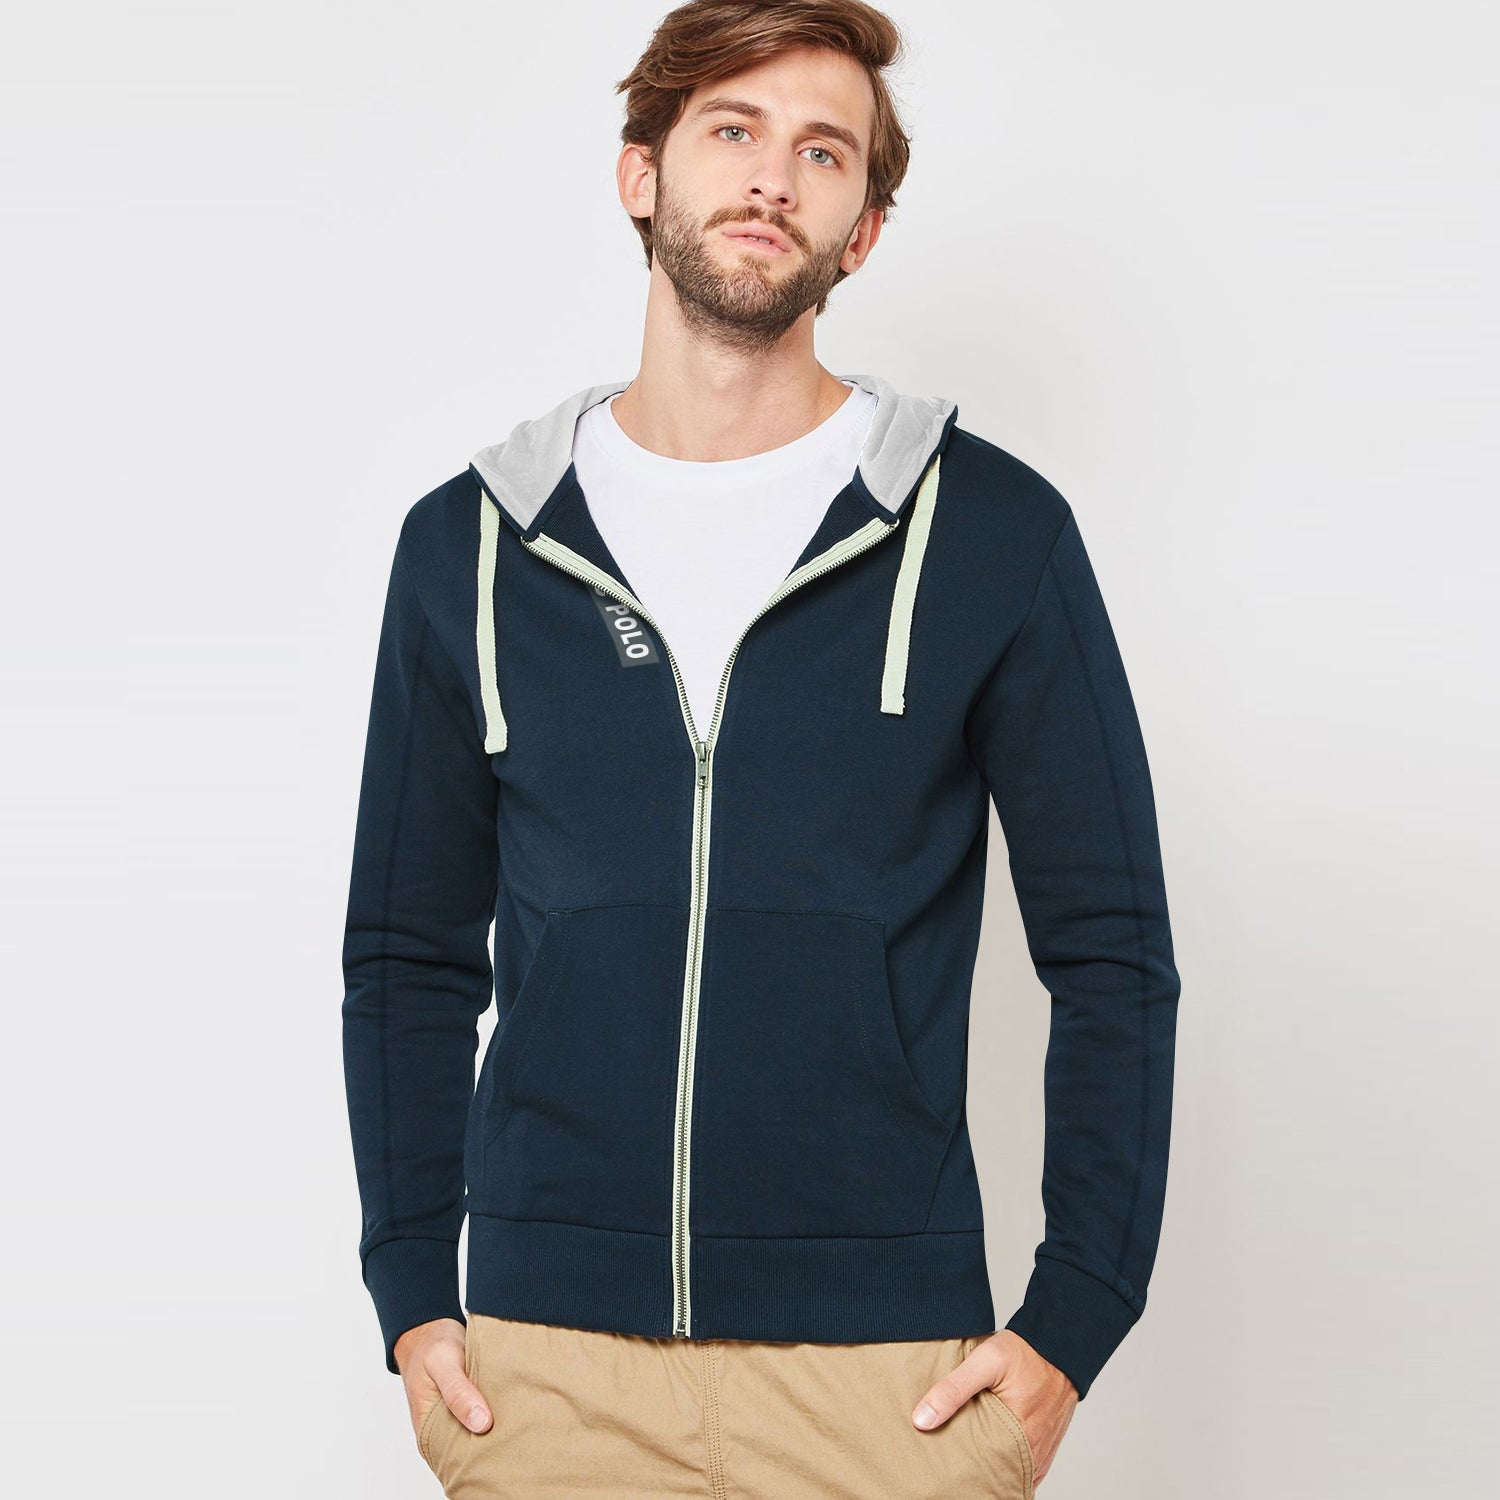 NYC Polo Terry Fleece Zipper Hoodie For Men-Dark Navy-BE12887